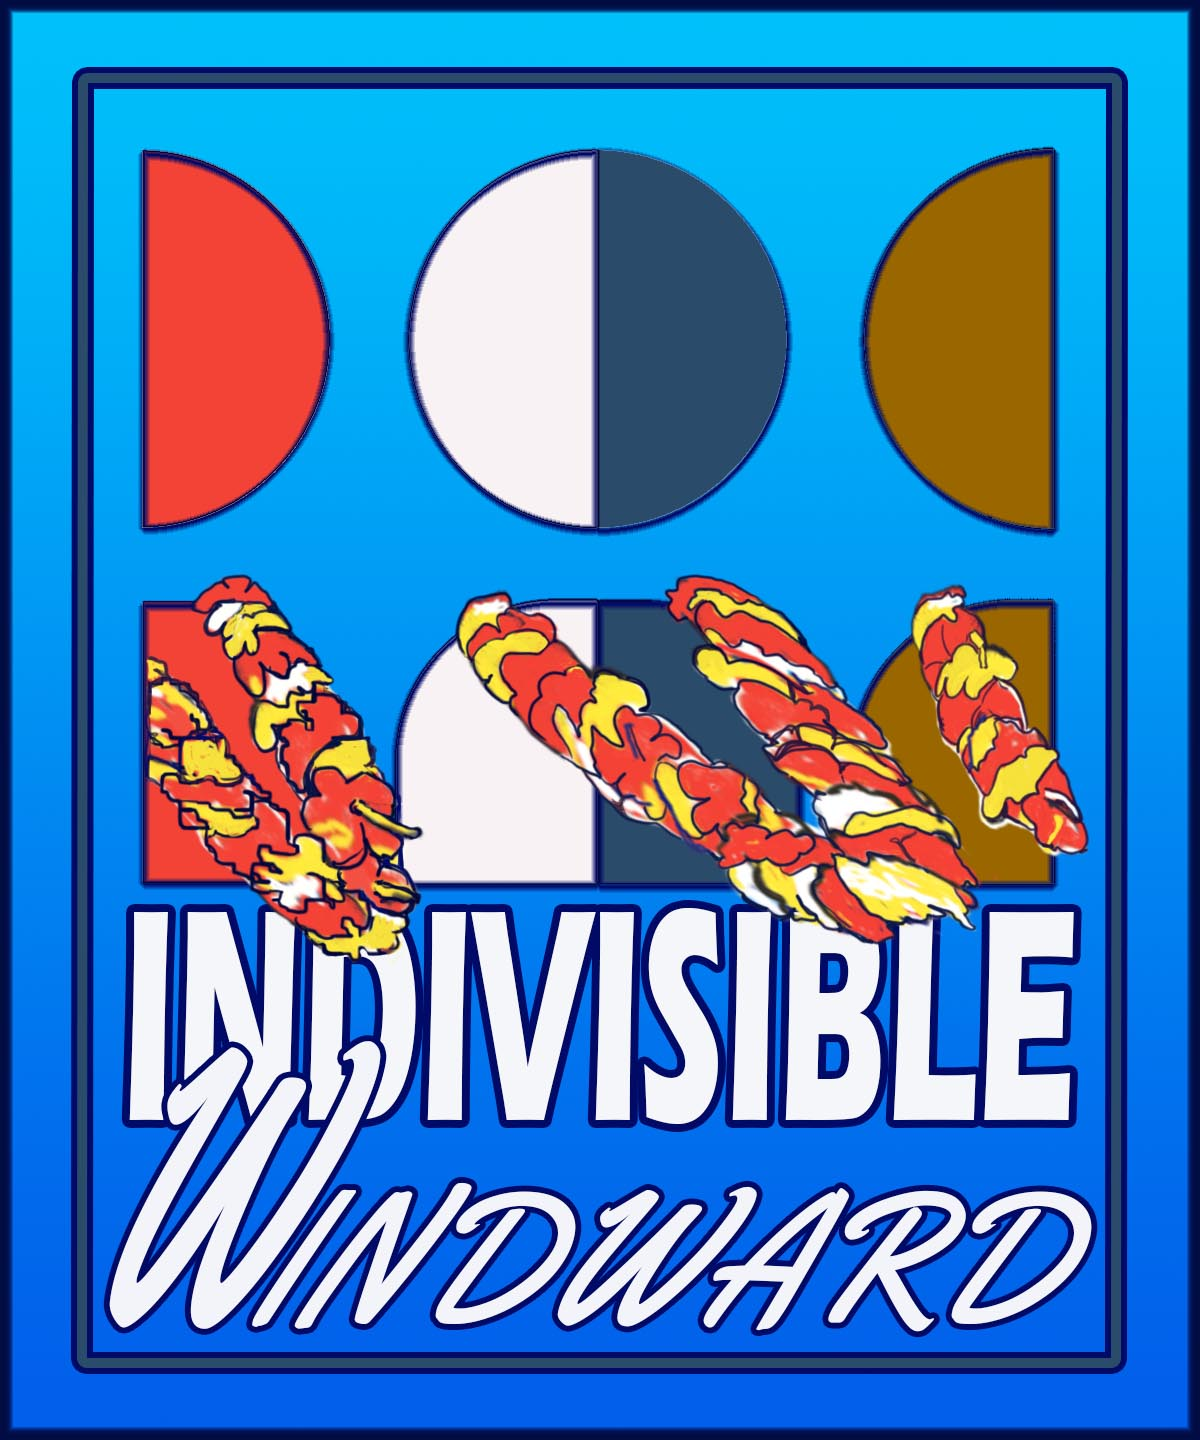 Indivisible Windward logo